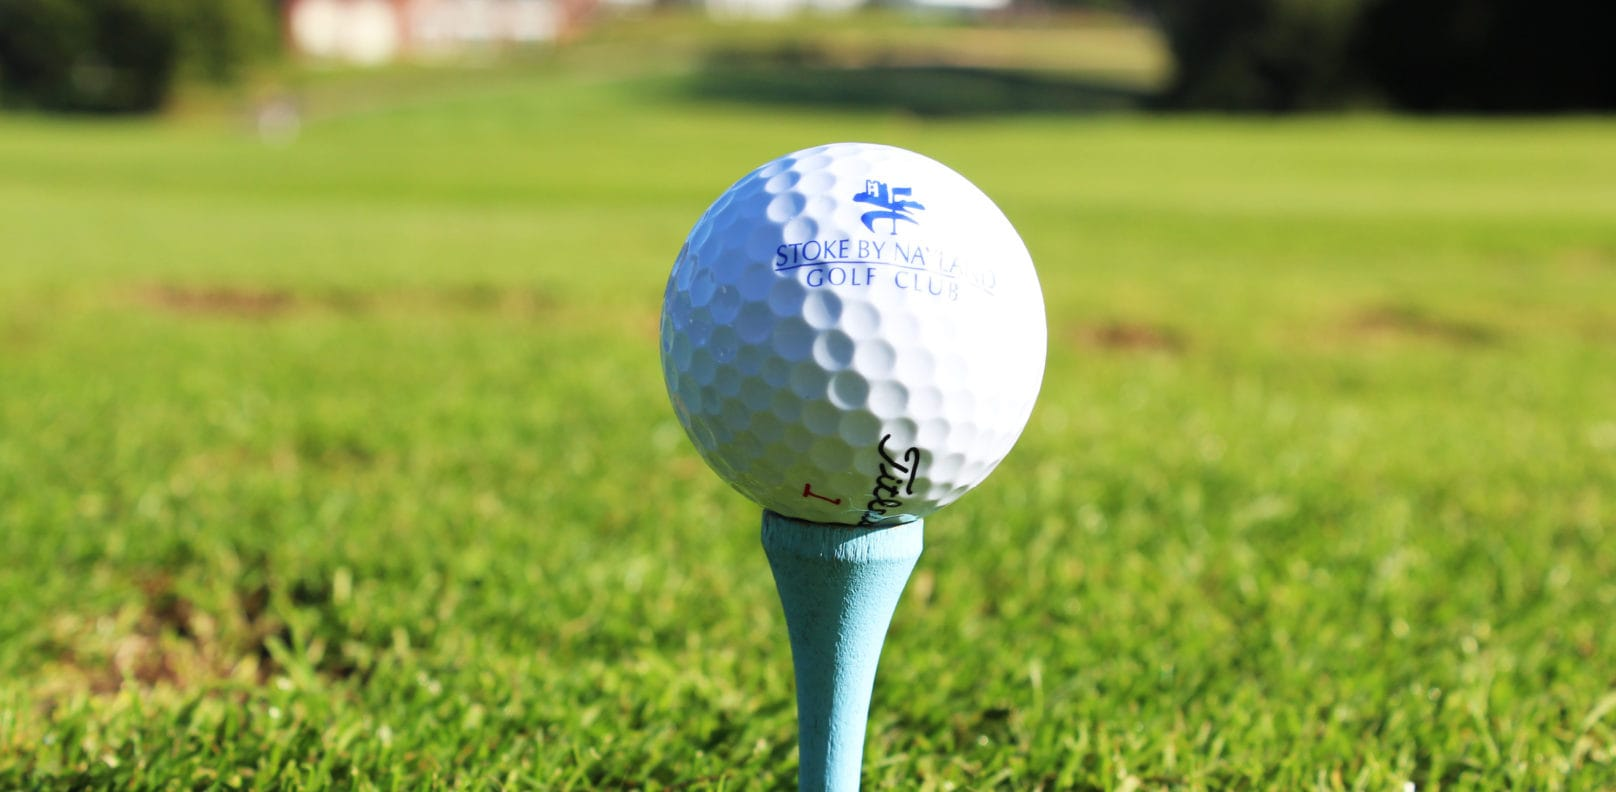 Golf ball - Stoke by Nayland Golf Club Essex